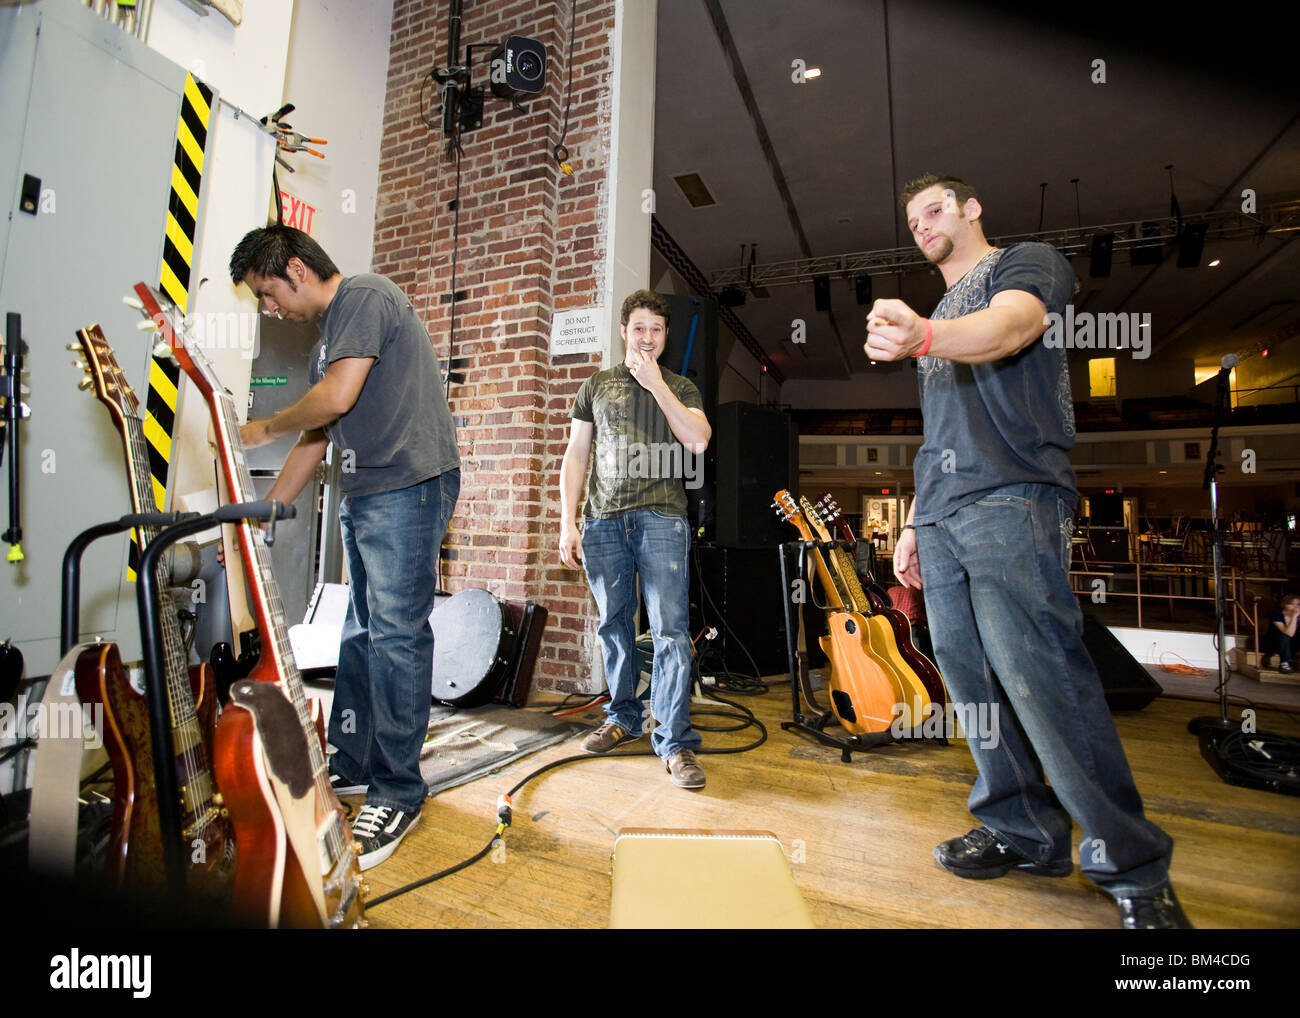 Rock band preparing for performance - Stock Image